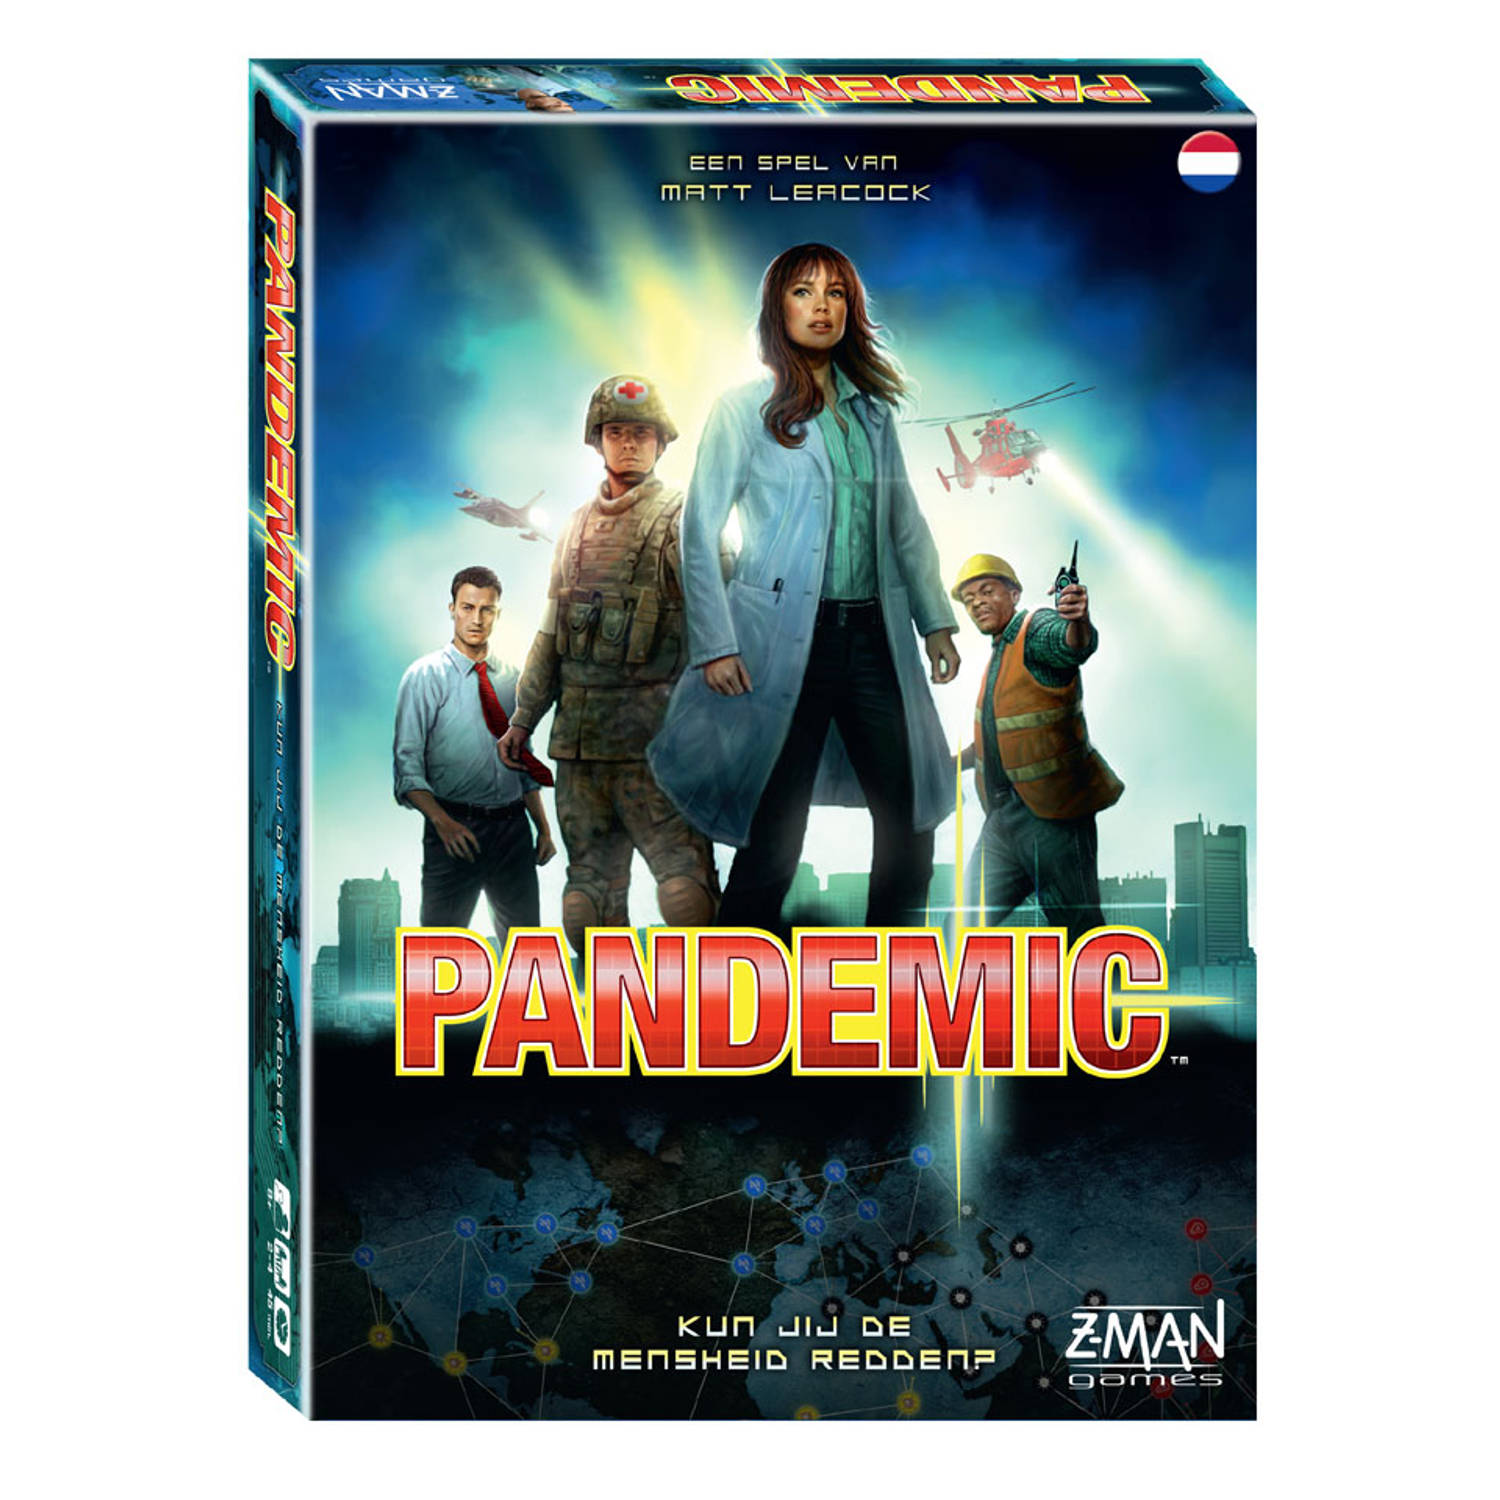 Korting Pandemic bordspel